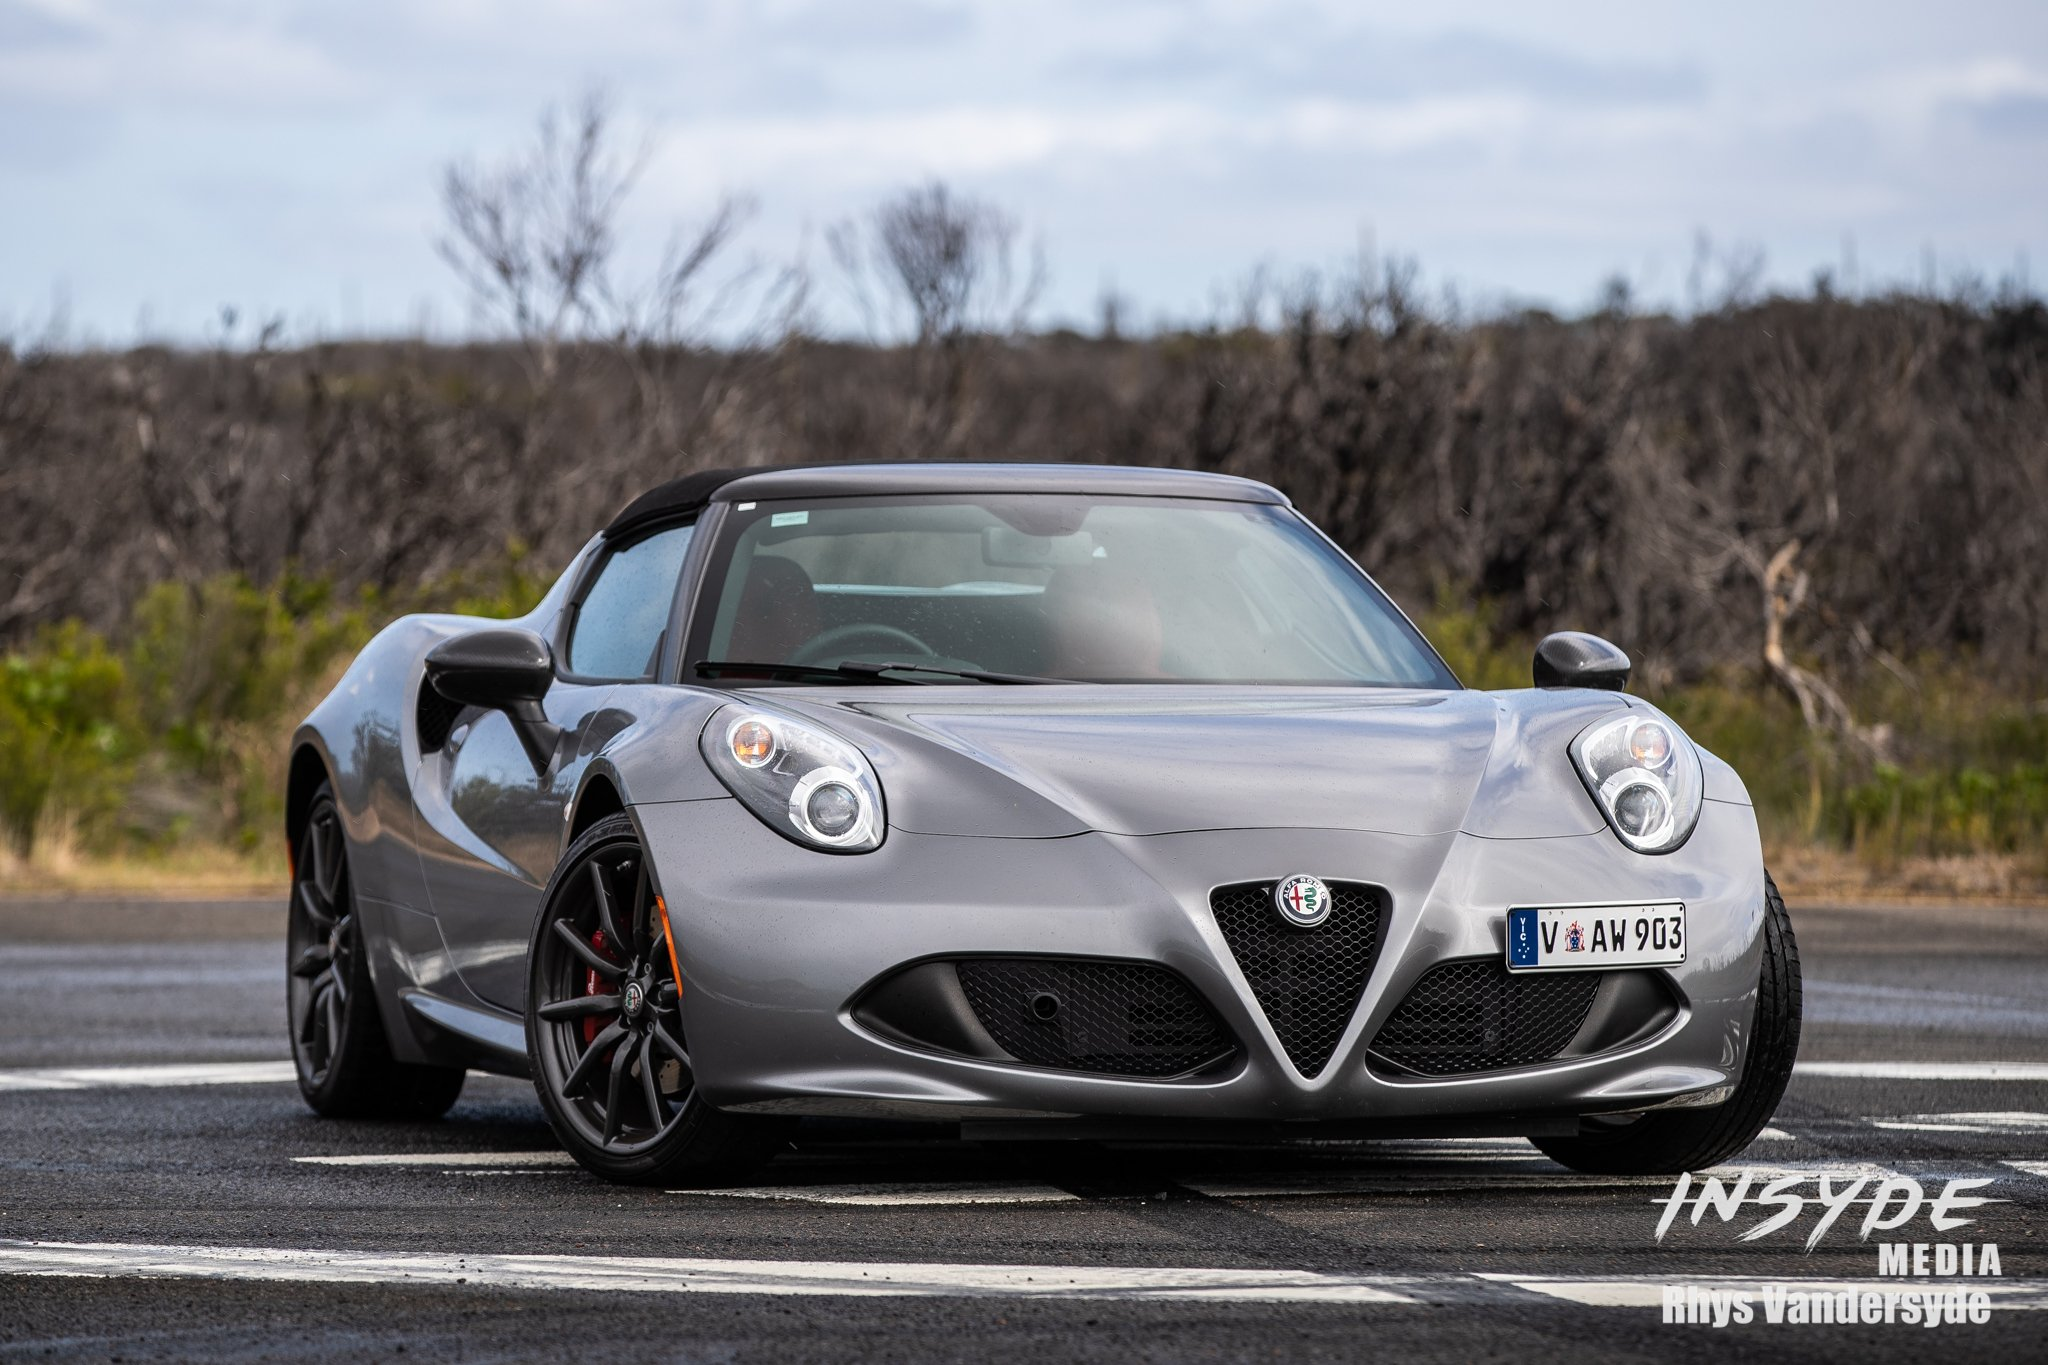 Photo Shoot: Alfa Romeo 4C